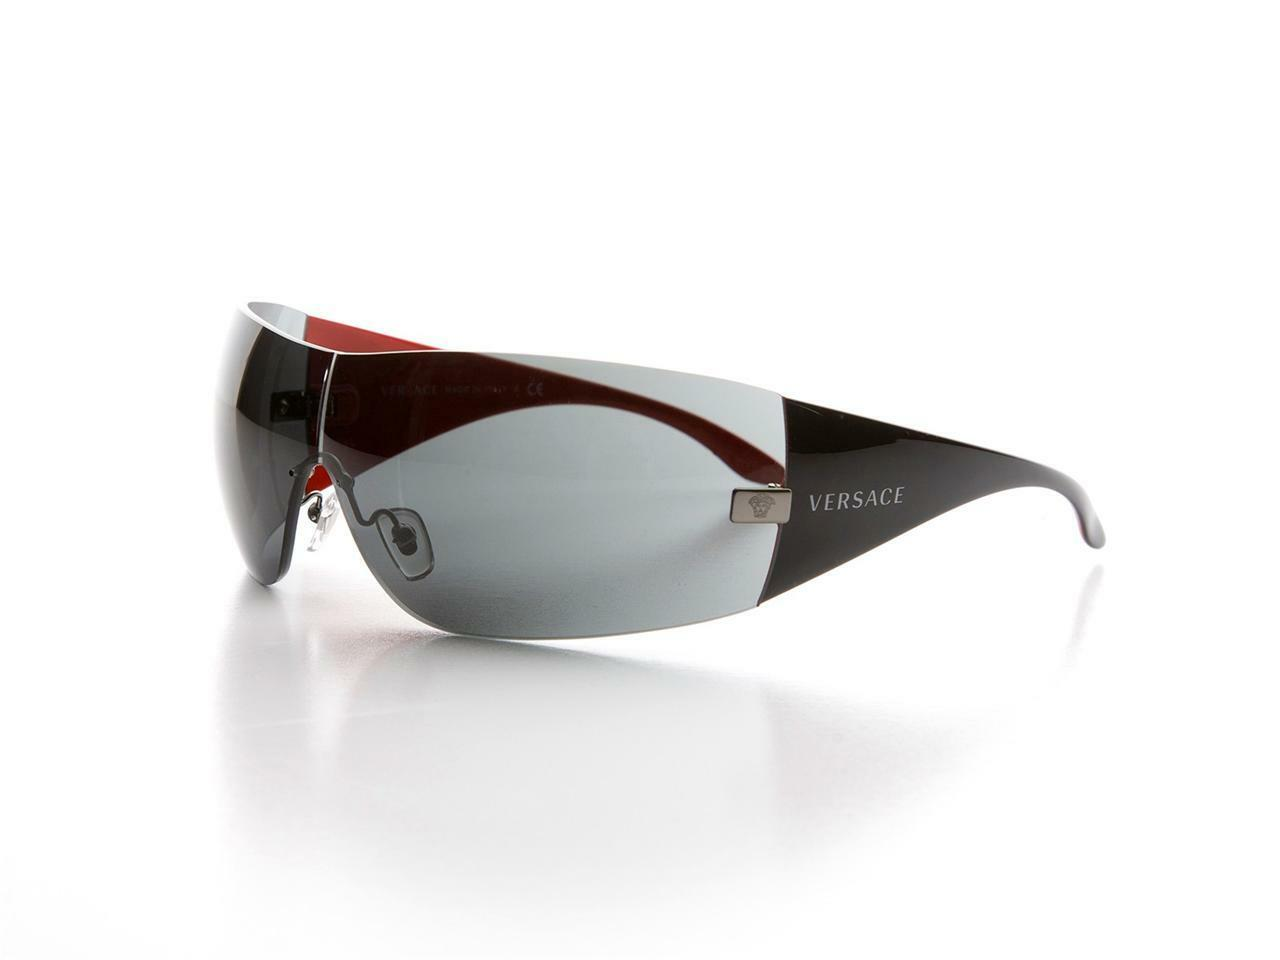 246afd779f Details about NEW Authentic VERSACE VE 2054 Sunglasses 1001 87 Black Red  Grey VE2054 2O54